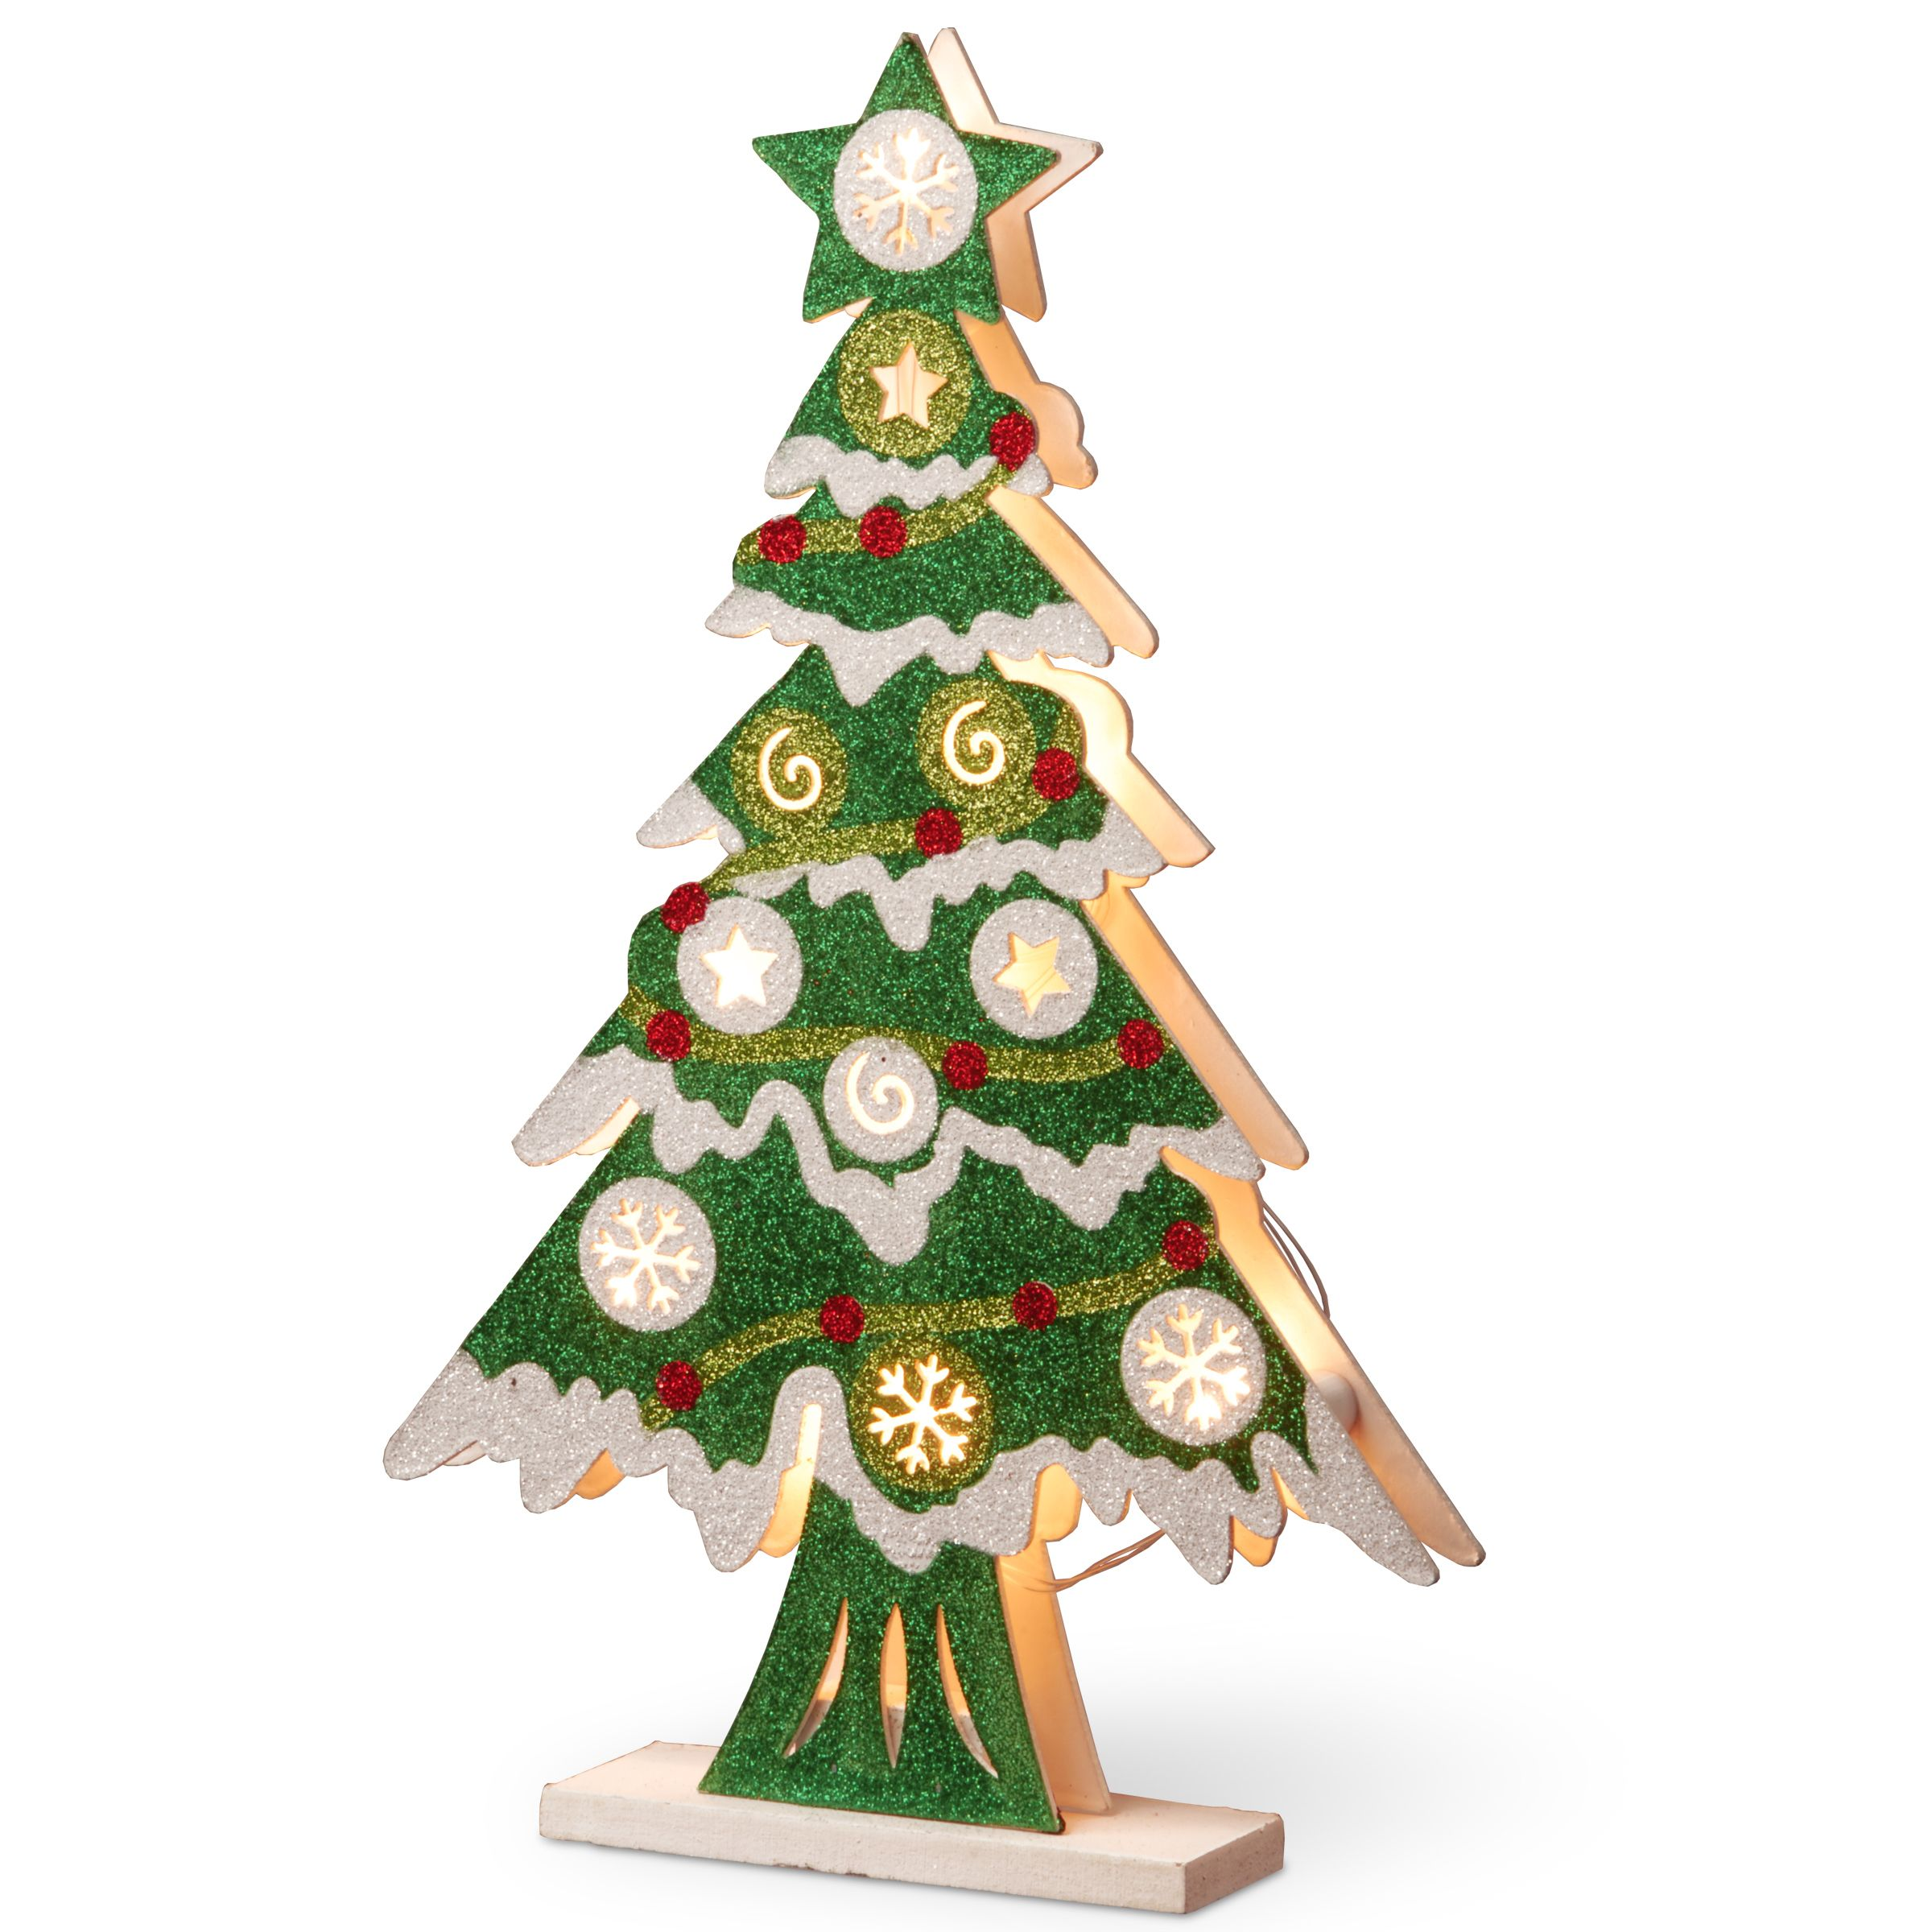 Wood 17-inch Pre-lit Christmas Tree (White, RED, Green)